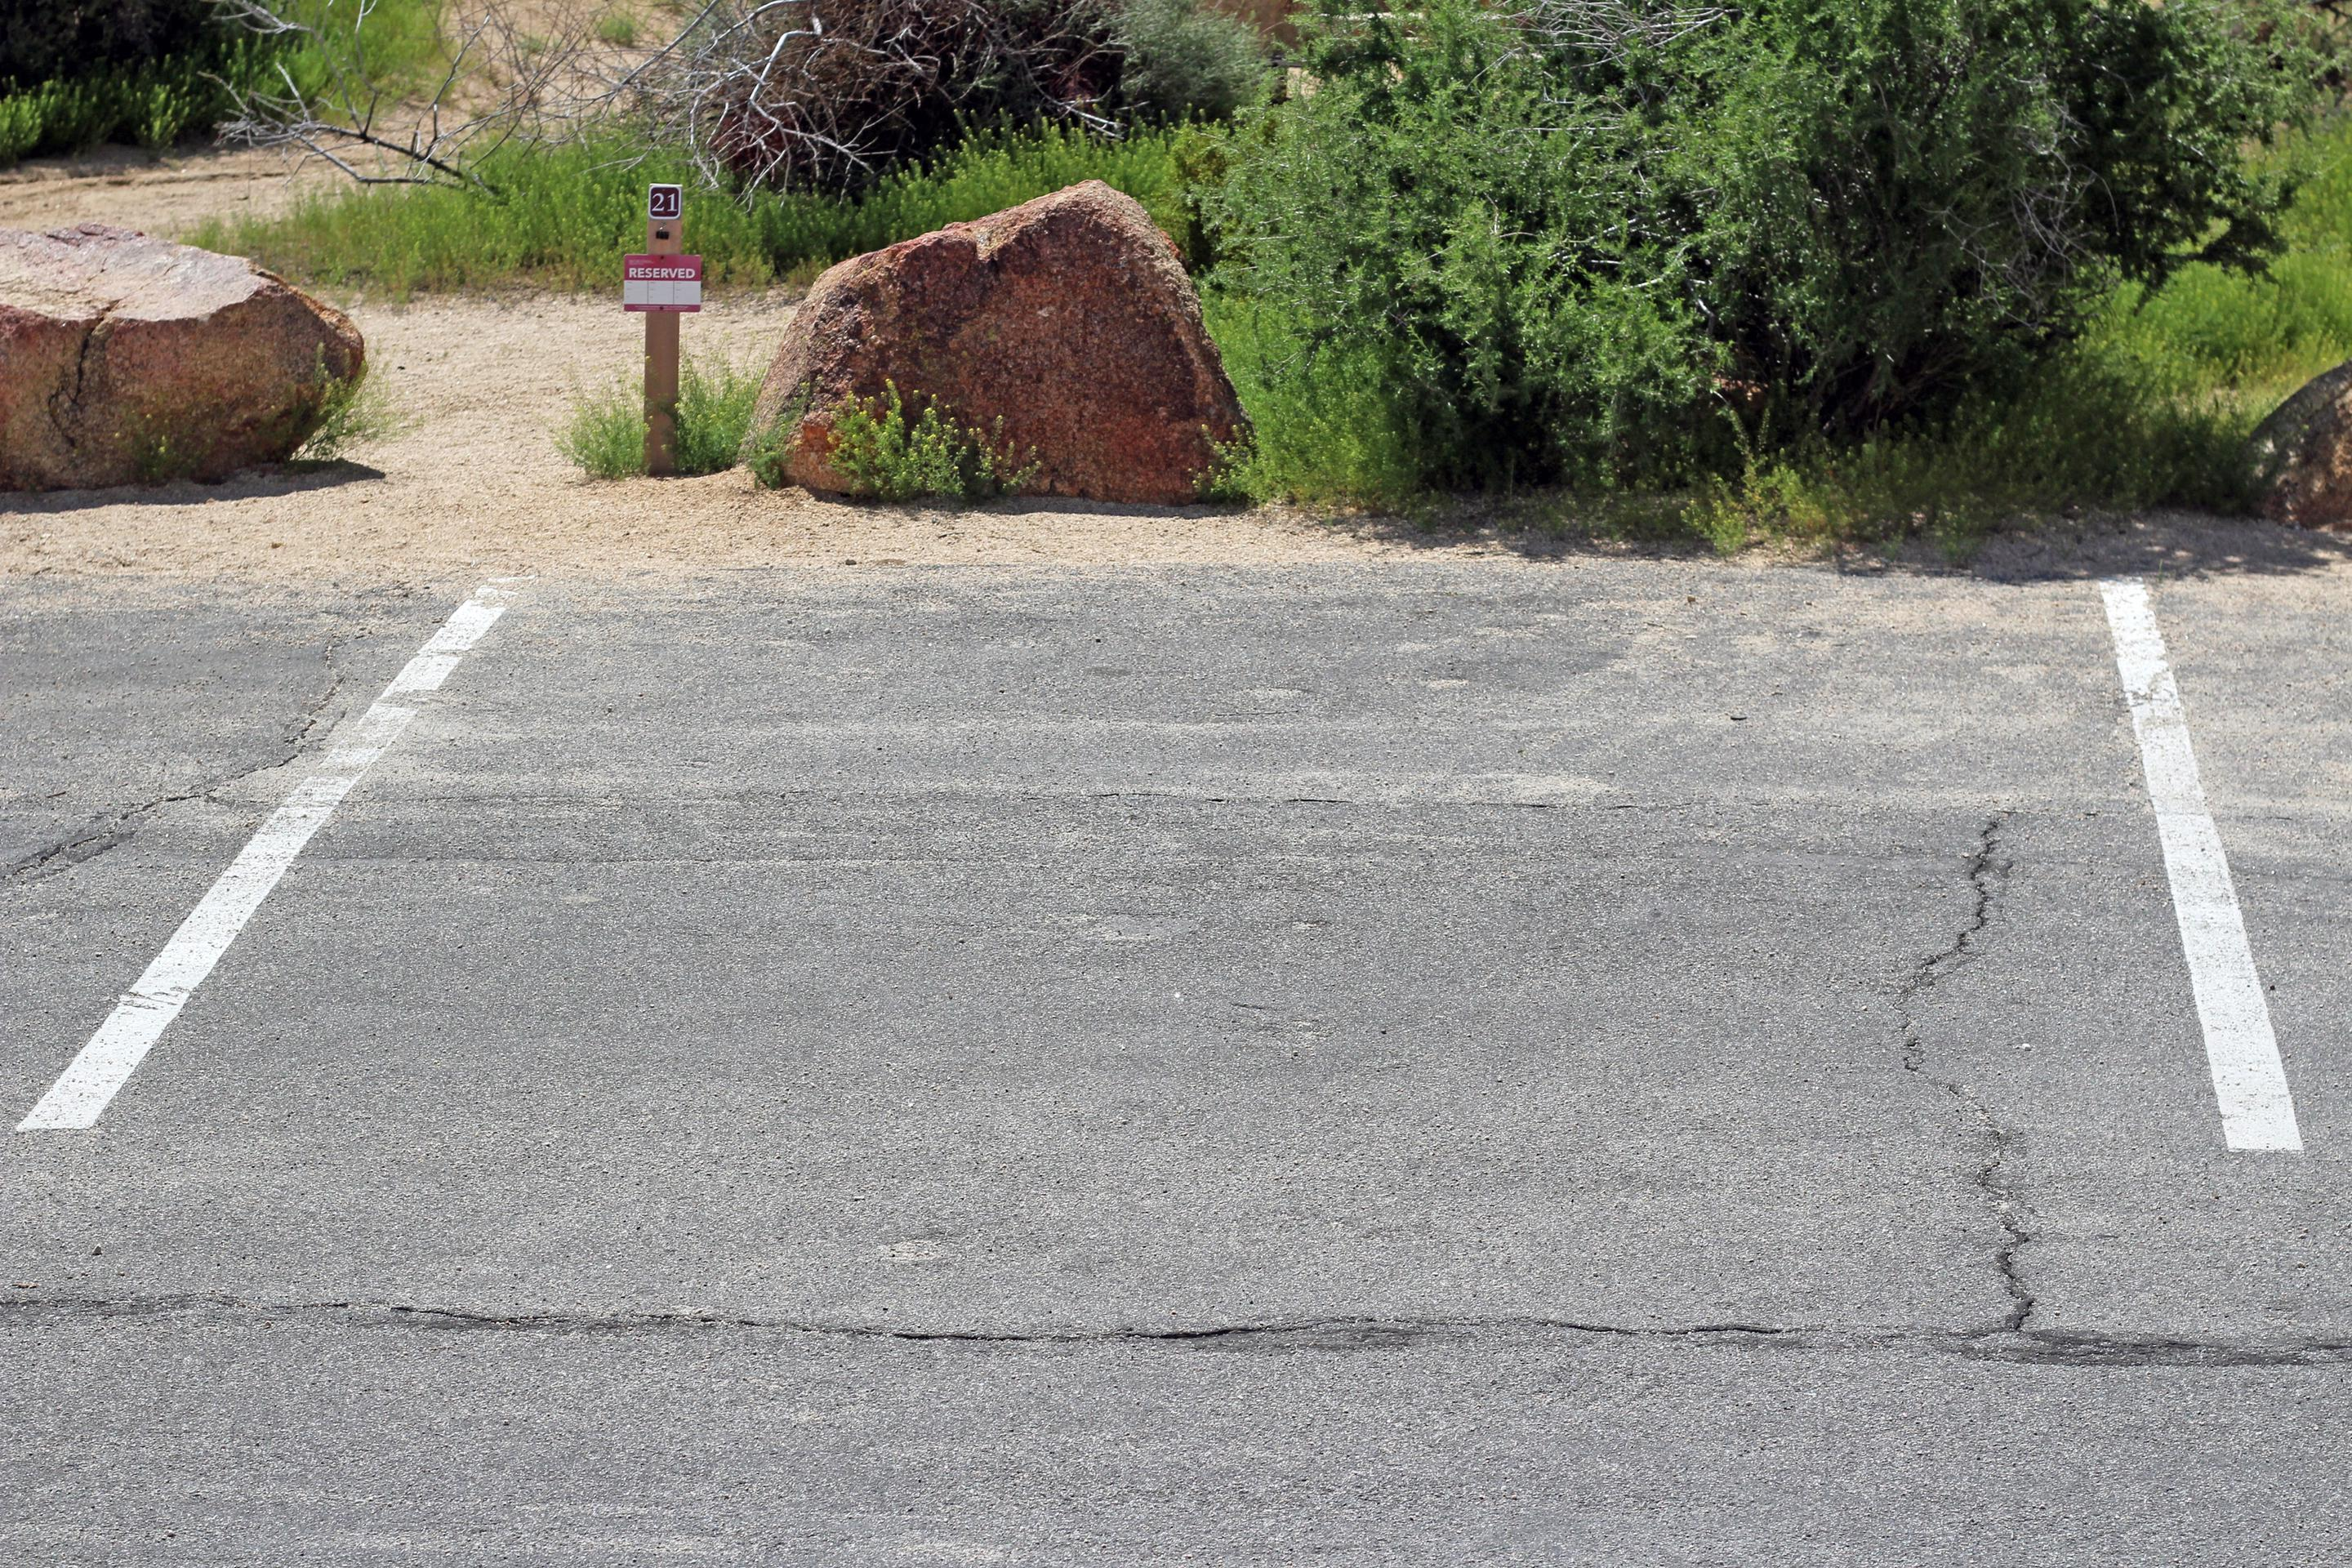 Shared parking for campsite. Picnic table surrounded by boulders and green plants. Shared parking for campsite.